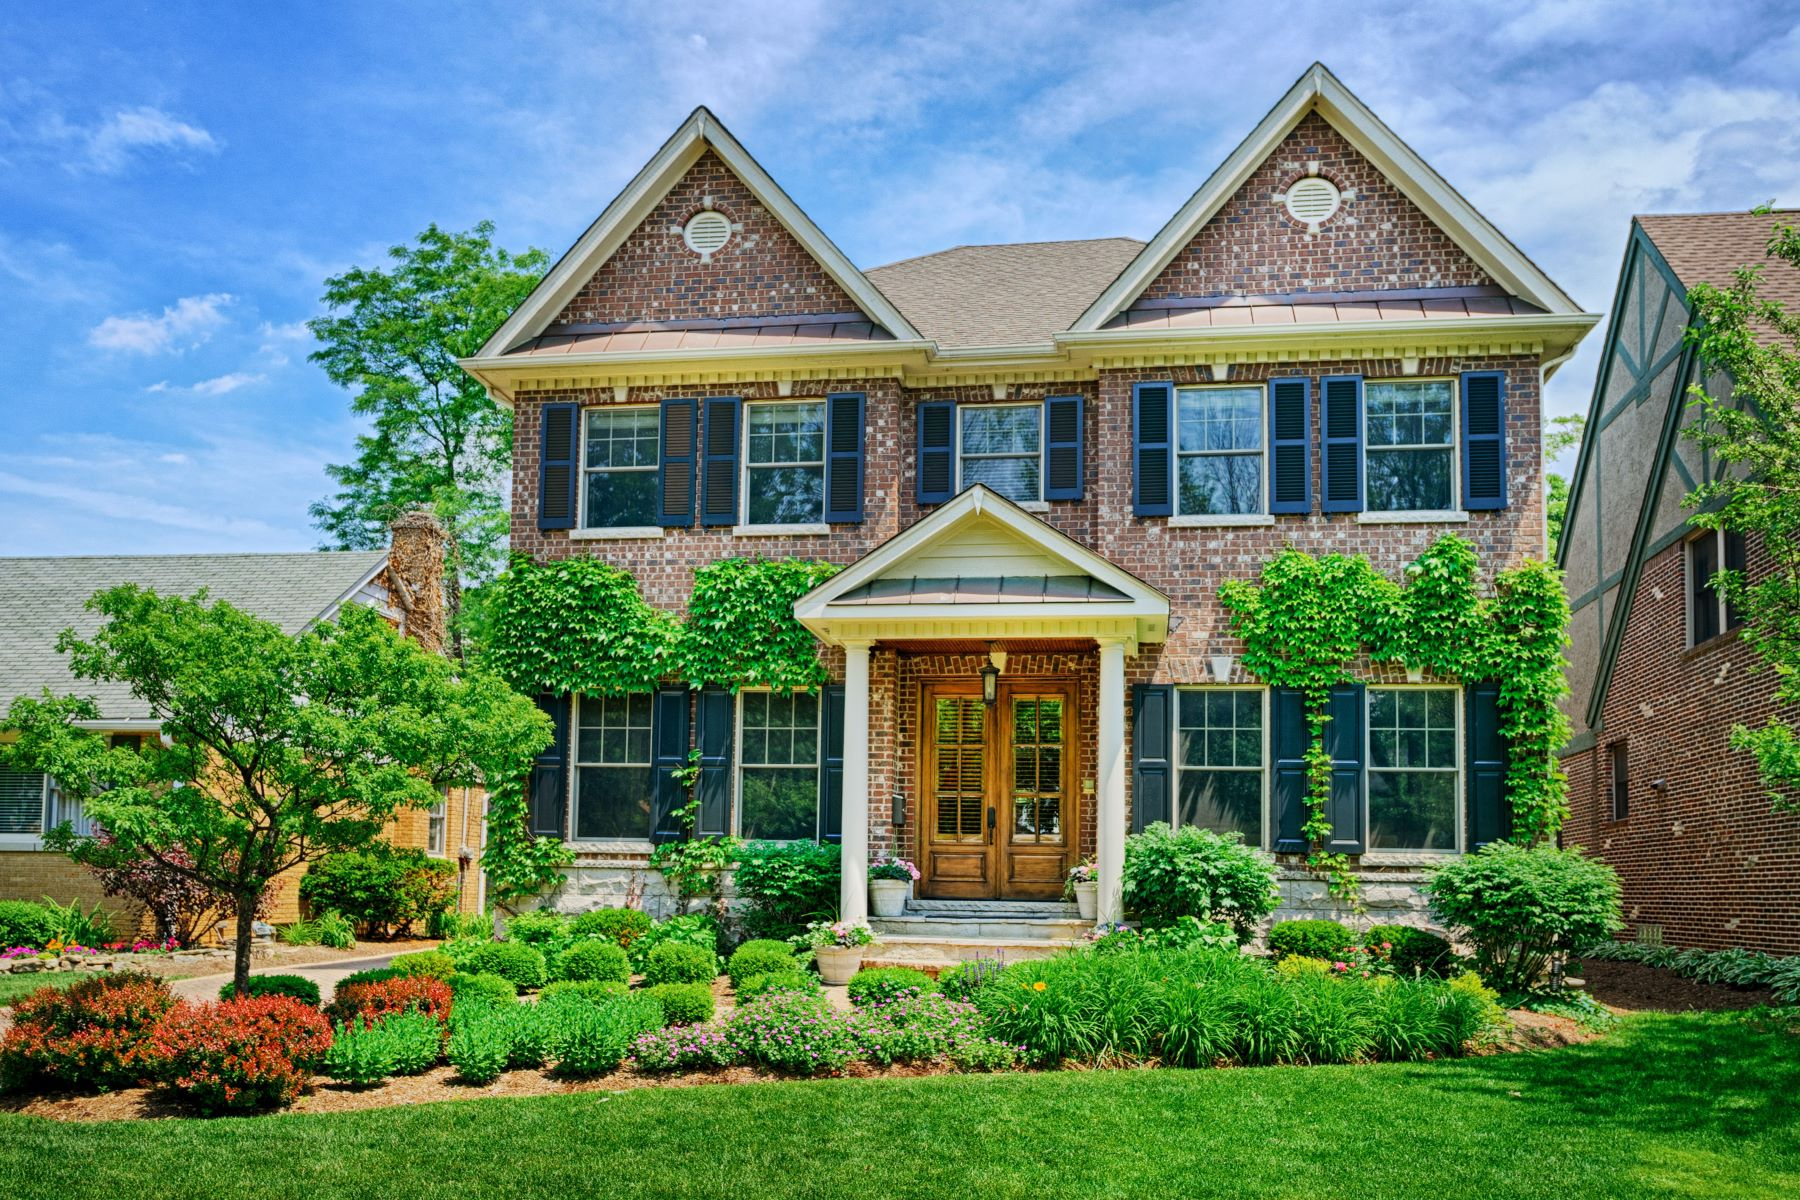 Single Family Homes for Active at Love Where You Live... 3841 Woodland Avenue Western Springs, Illinois 60558 United States